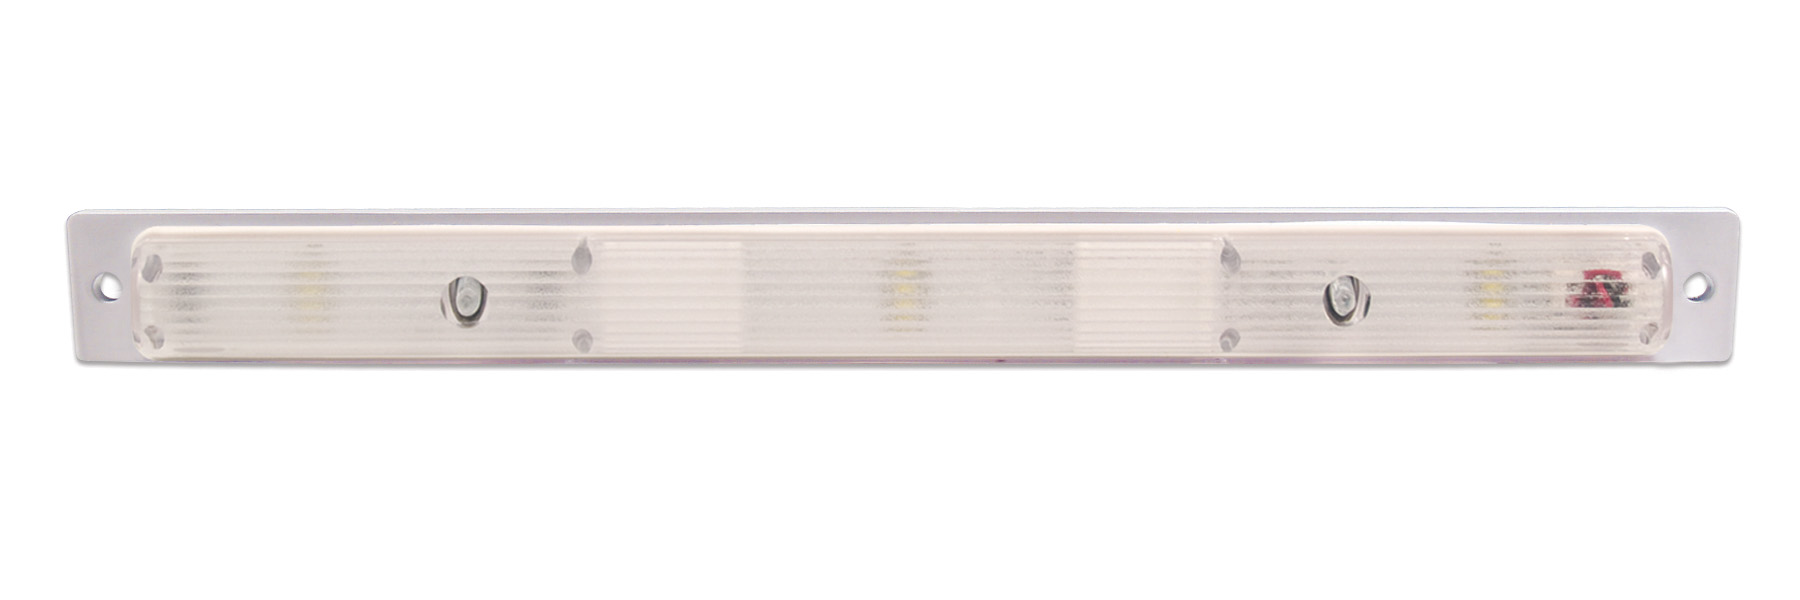 LED Strip Light Product Image